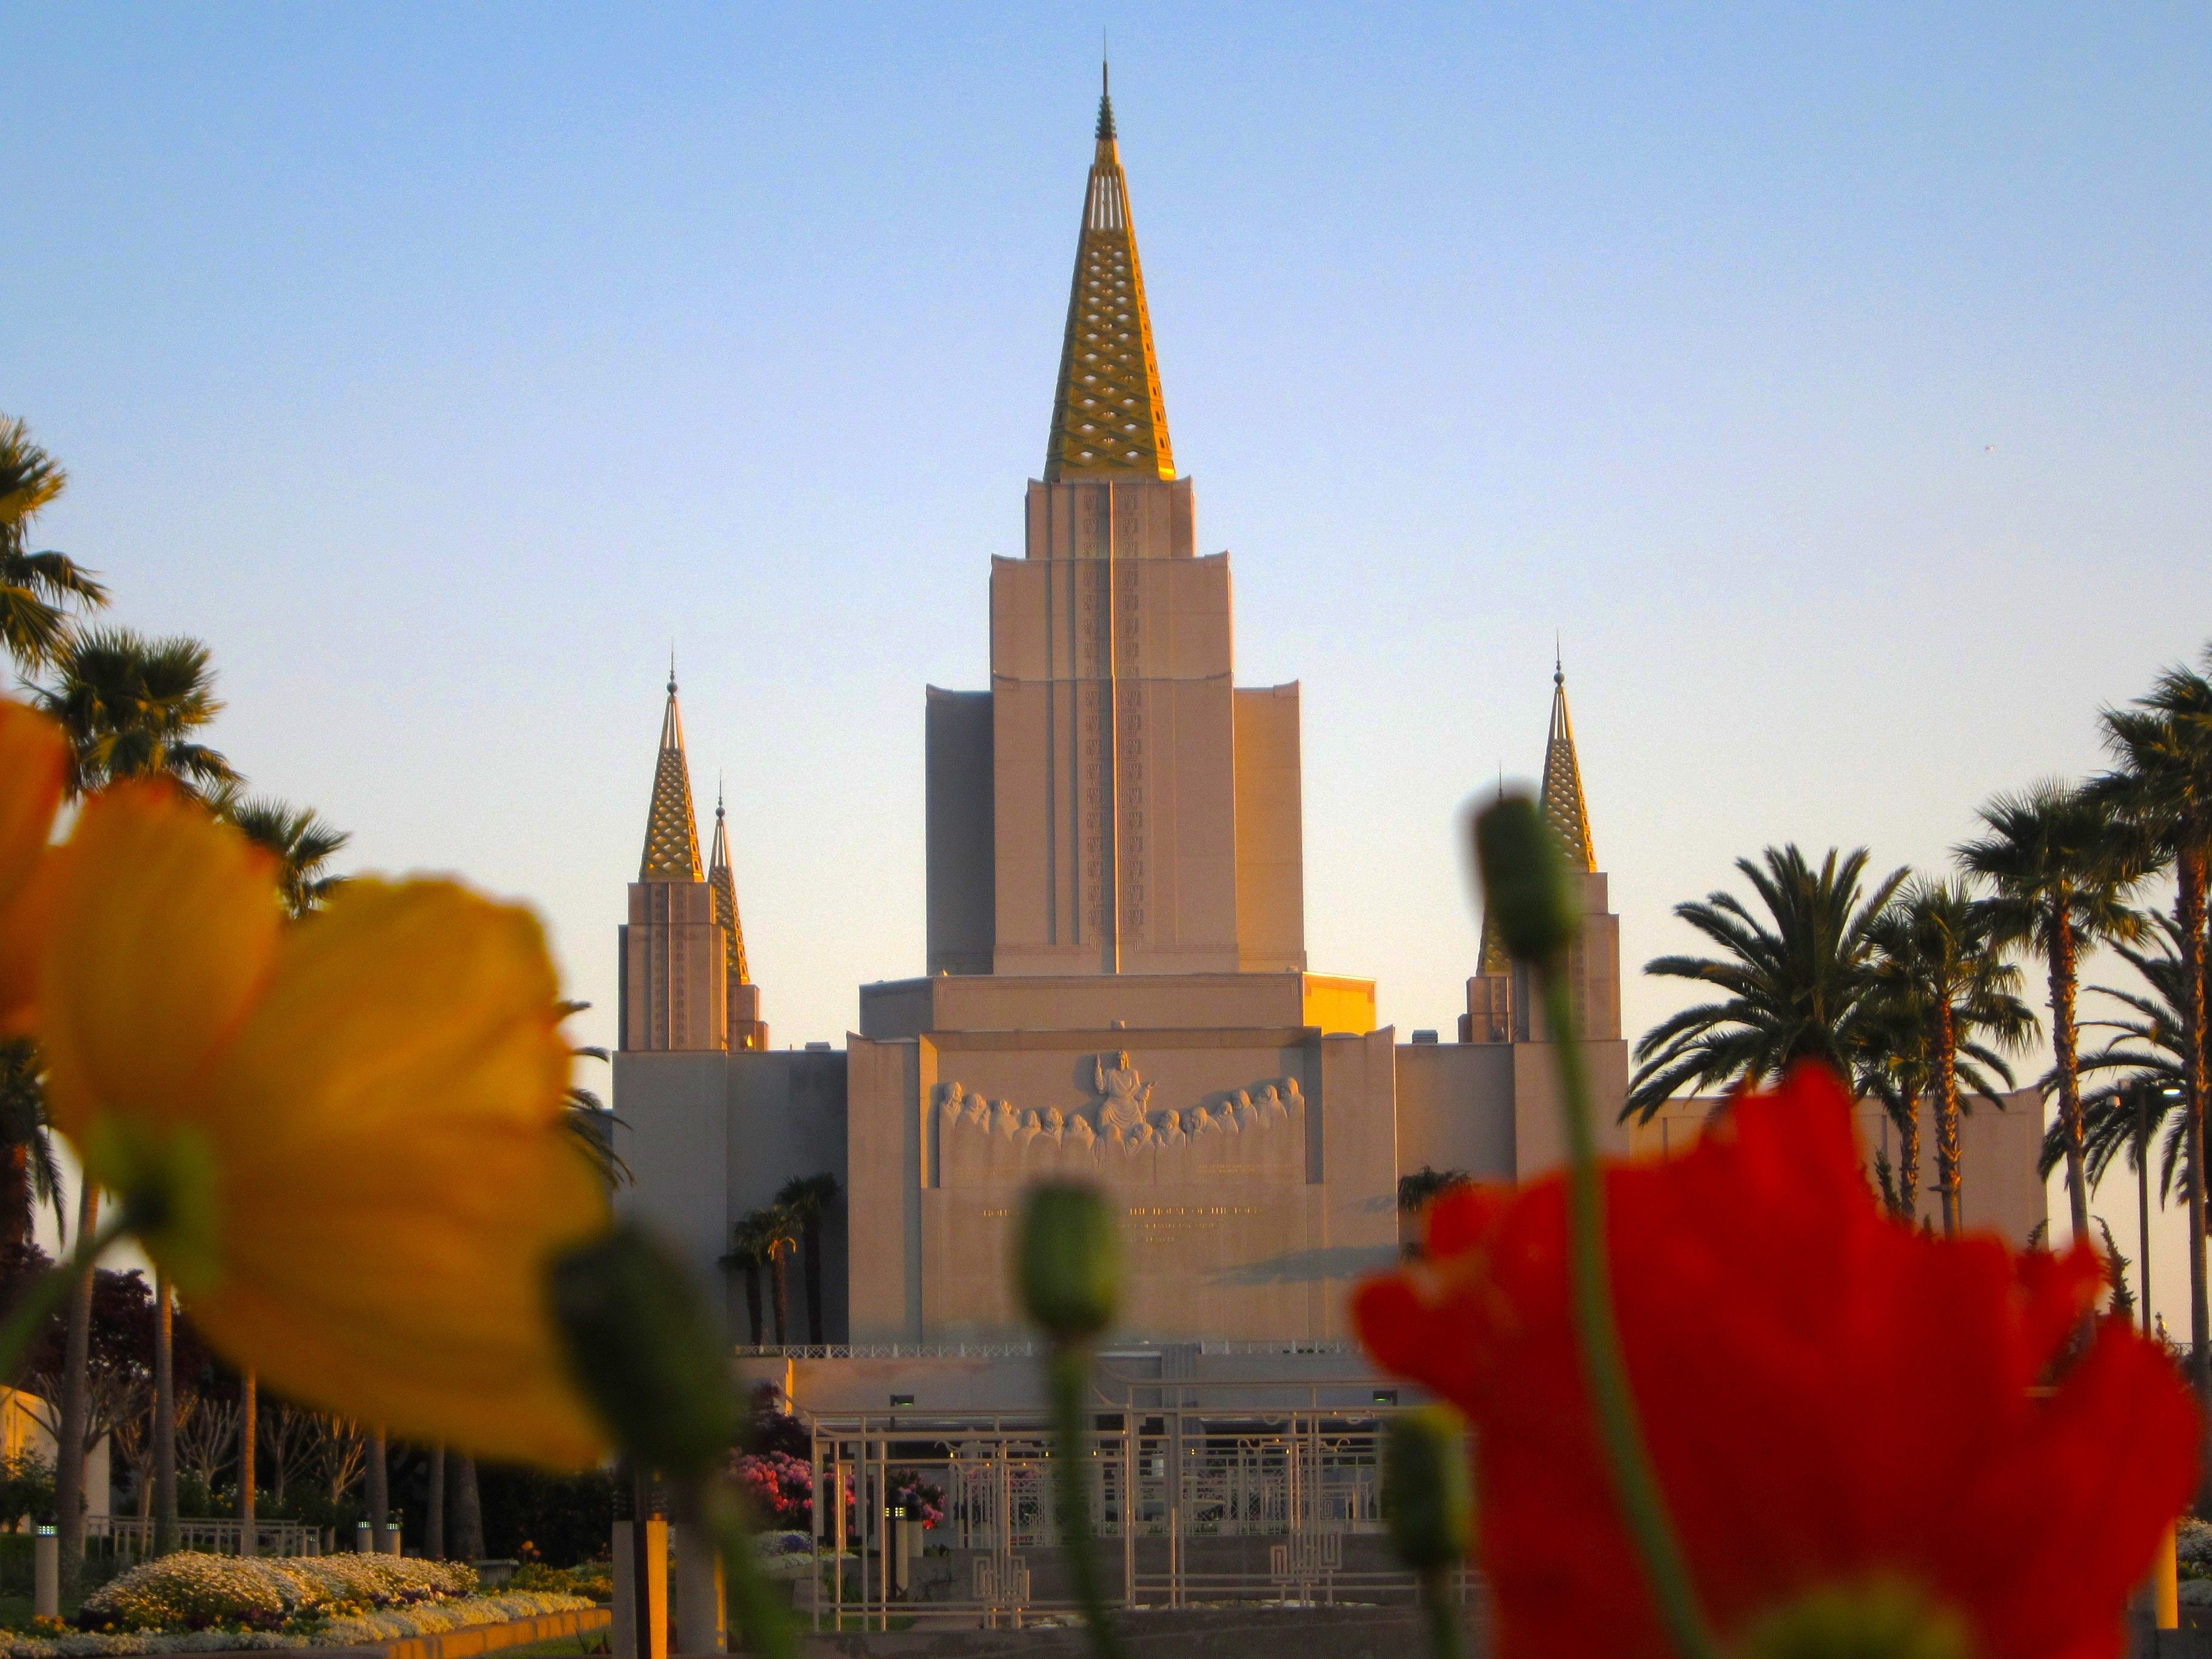 The Oakland California Temple, including the entrance and scenery.